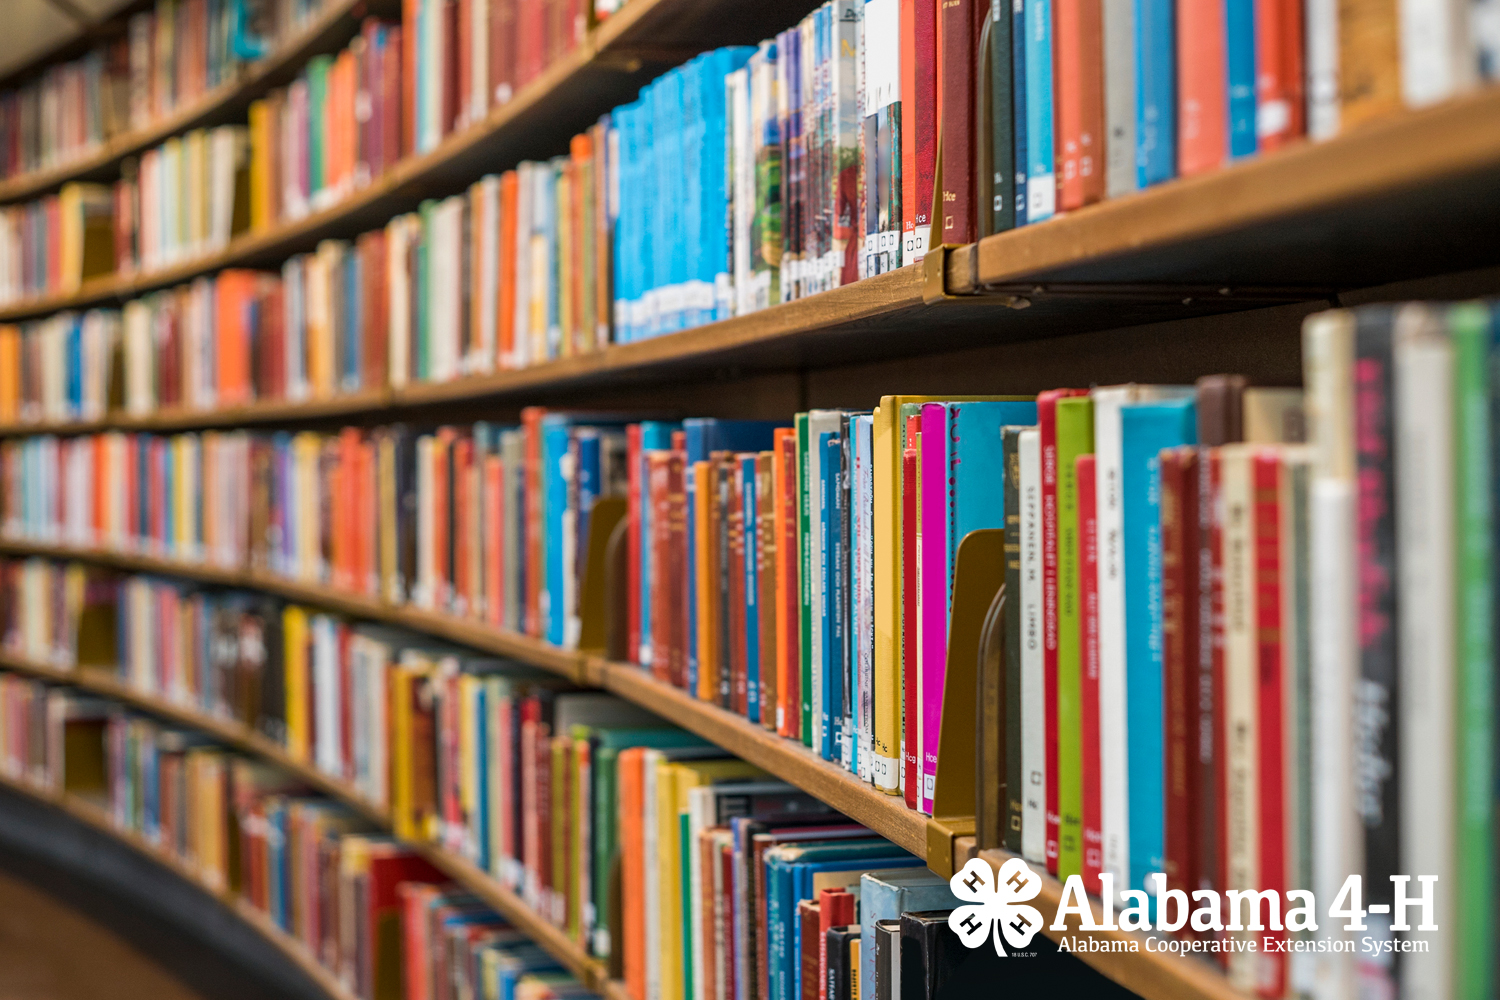 Alabama 4-H Foundation memorial and tribute gifts; image of library bookshelf